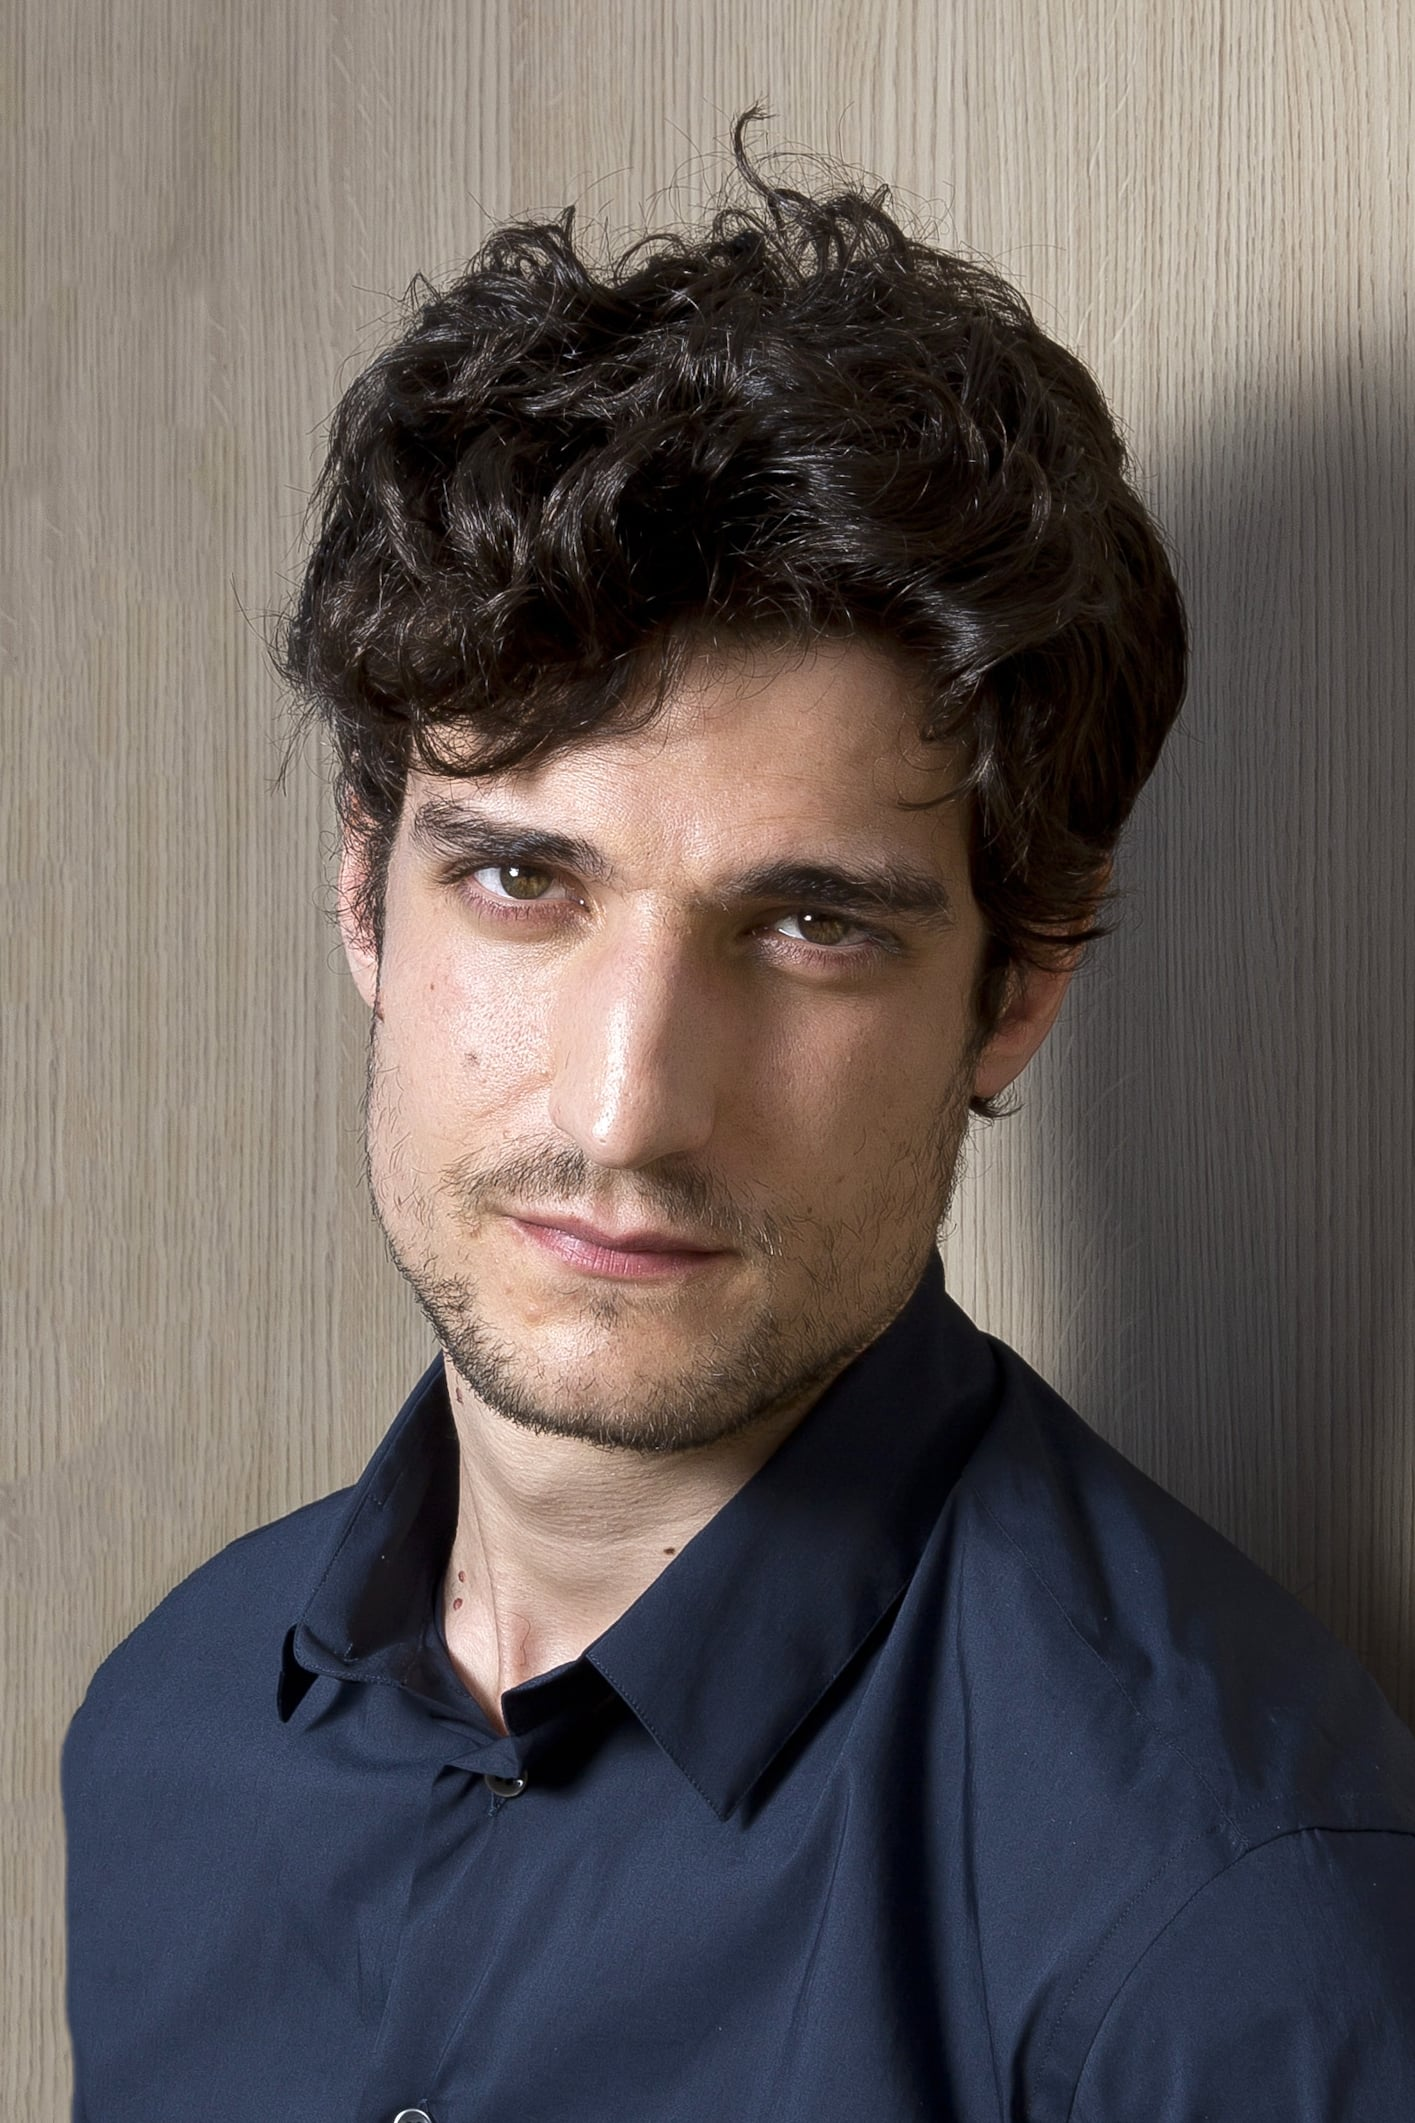 Louis Garrel Pro Images Mdash The Movie Database Tmdb